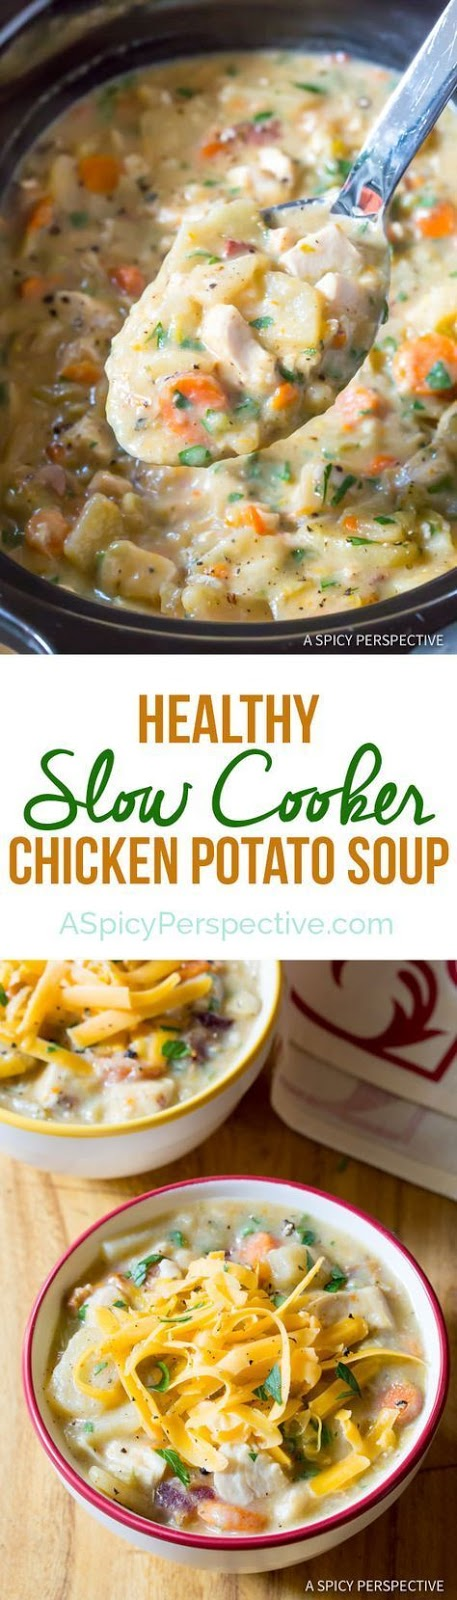 Best Healthy Slow Cooker Potato Soup with Chicken